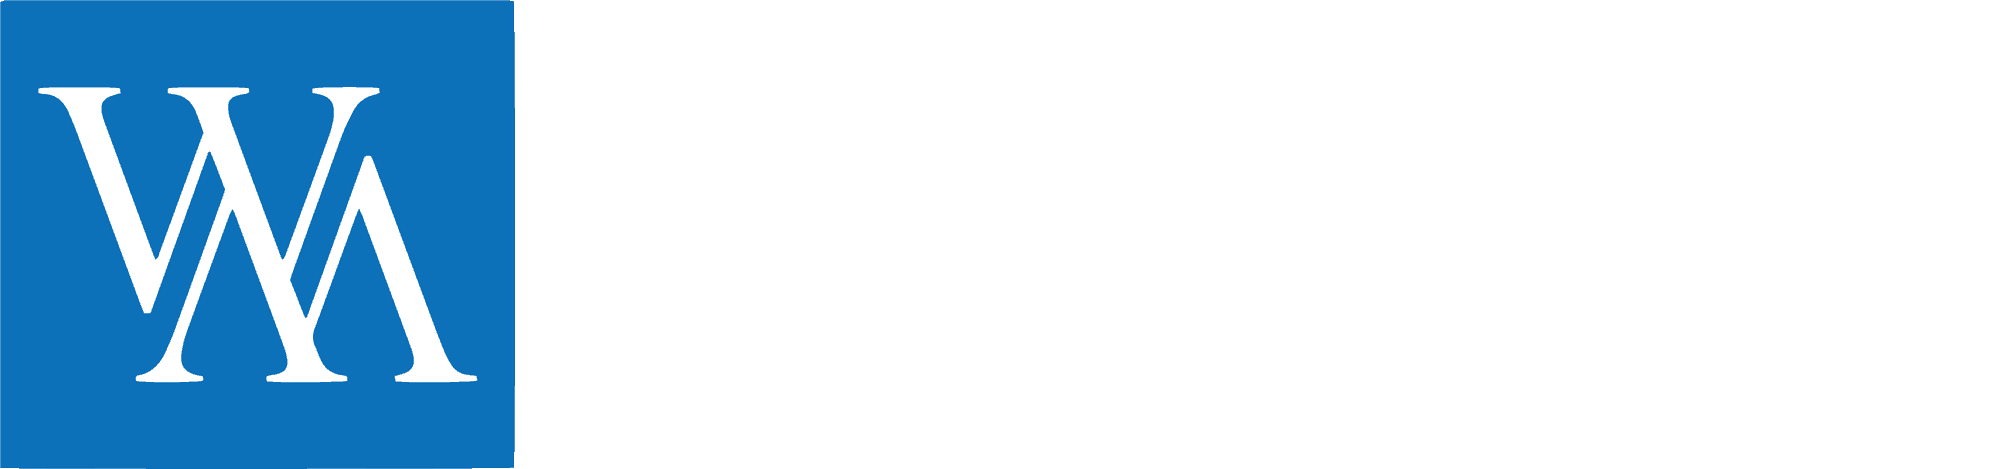 WEST METRO APPLIANCE REPAIR